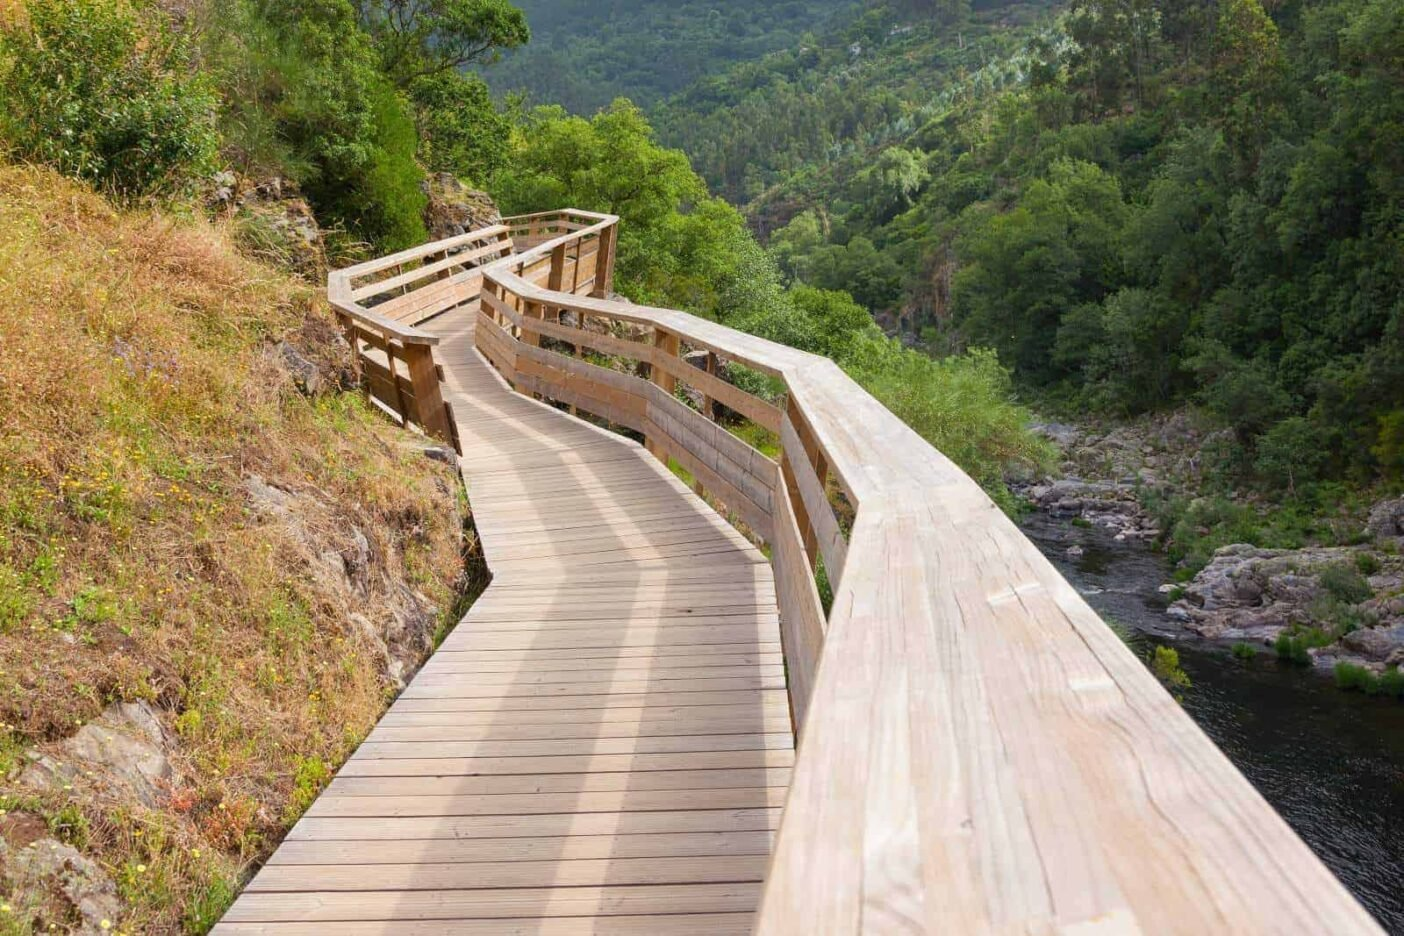 Wooden walkways clinging to the mountain sides along the Aveiro river with a view of a green valley and forests